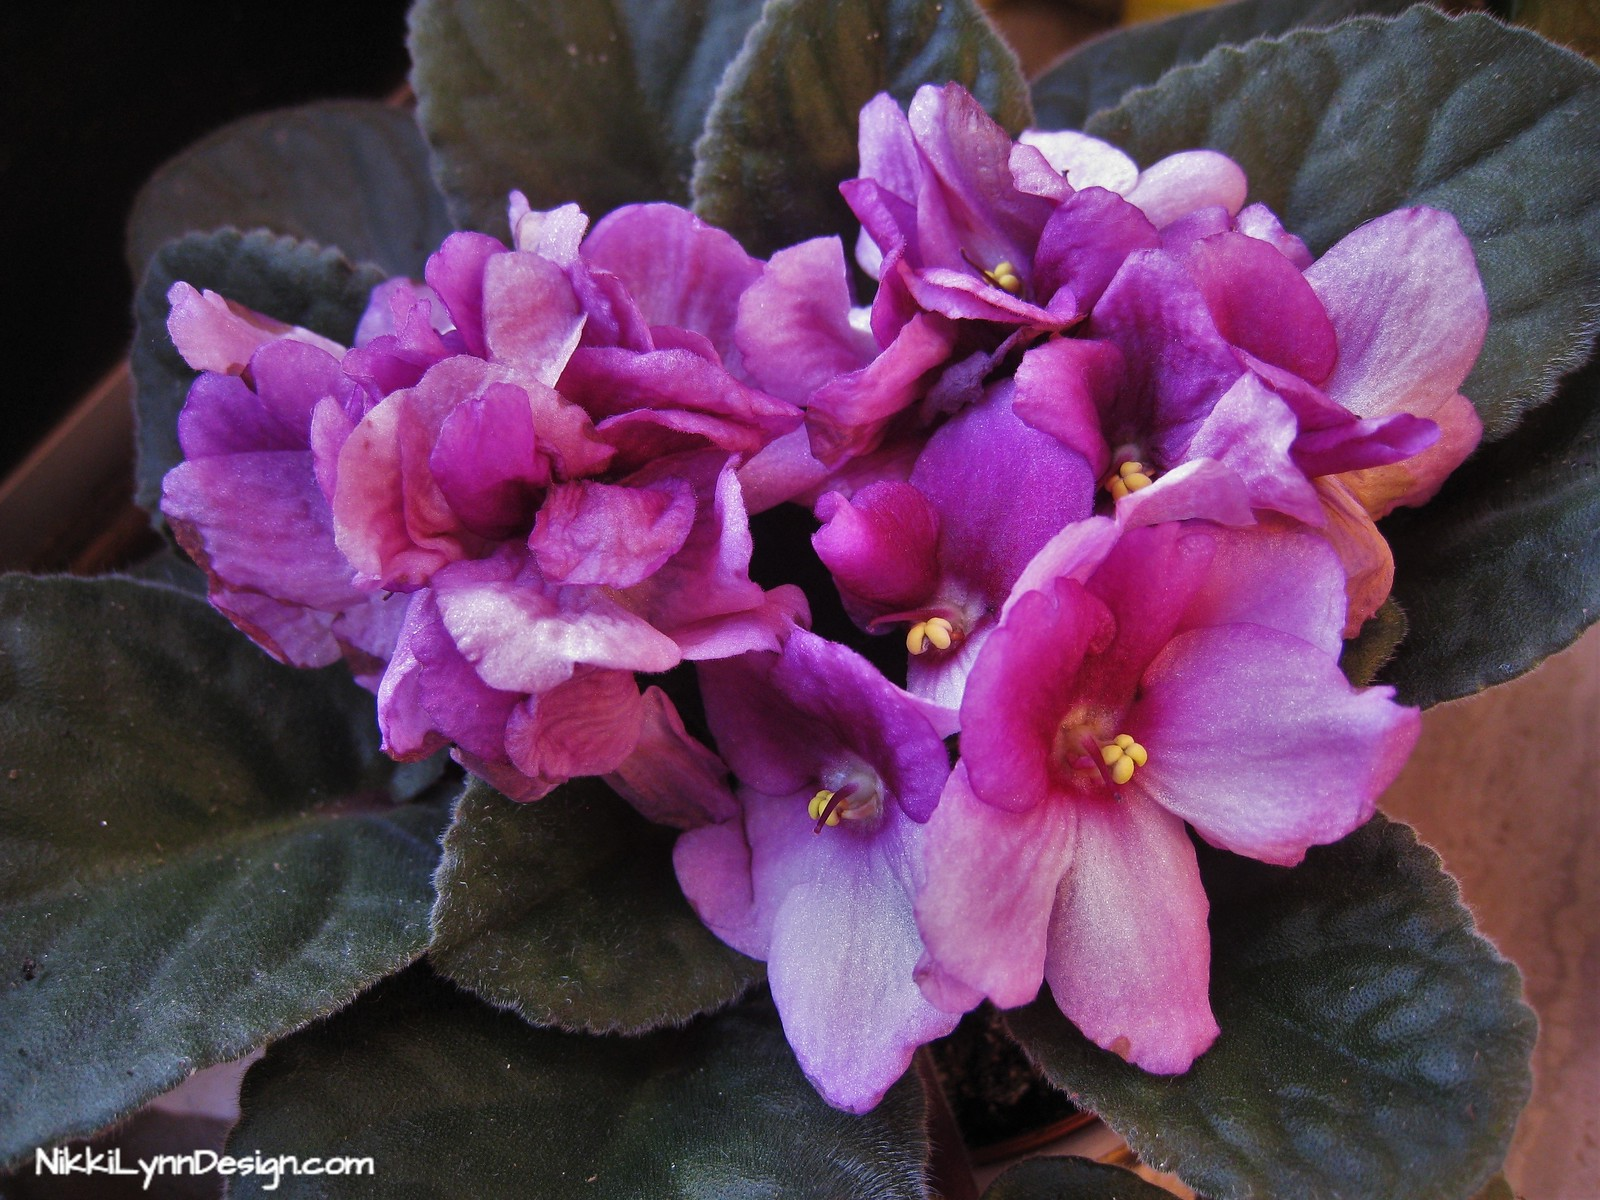 Secret to getting African violets to bloom